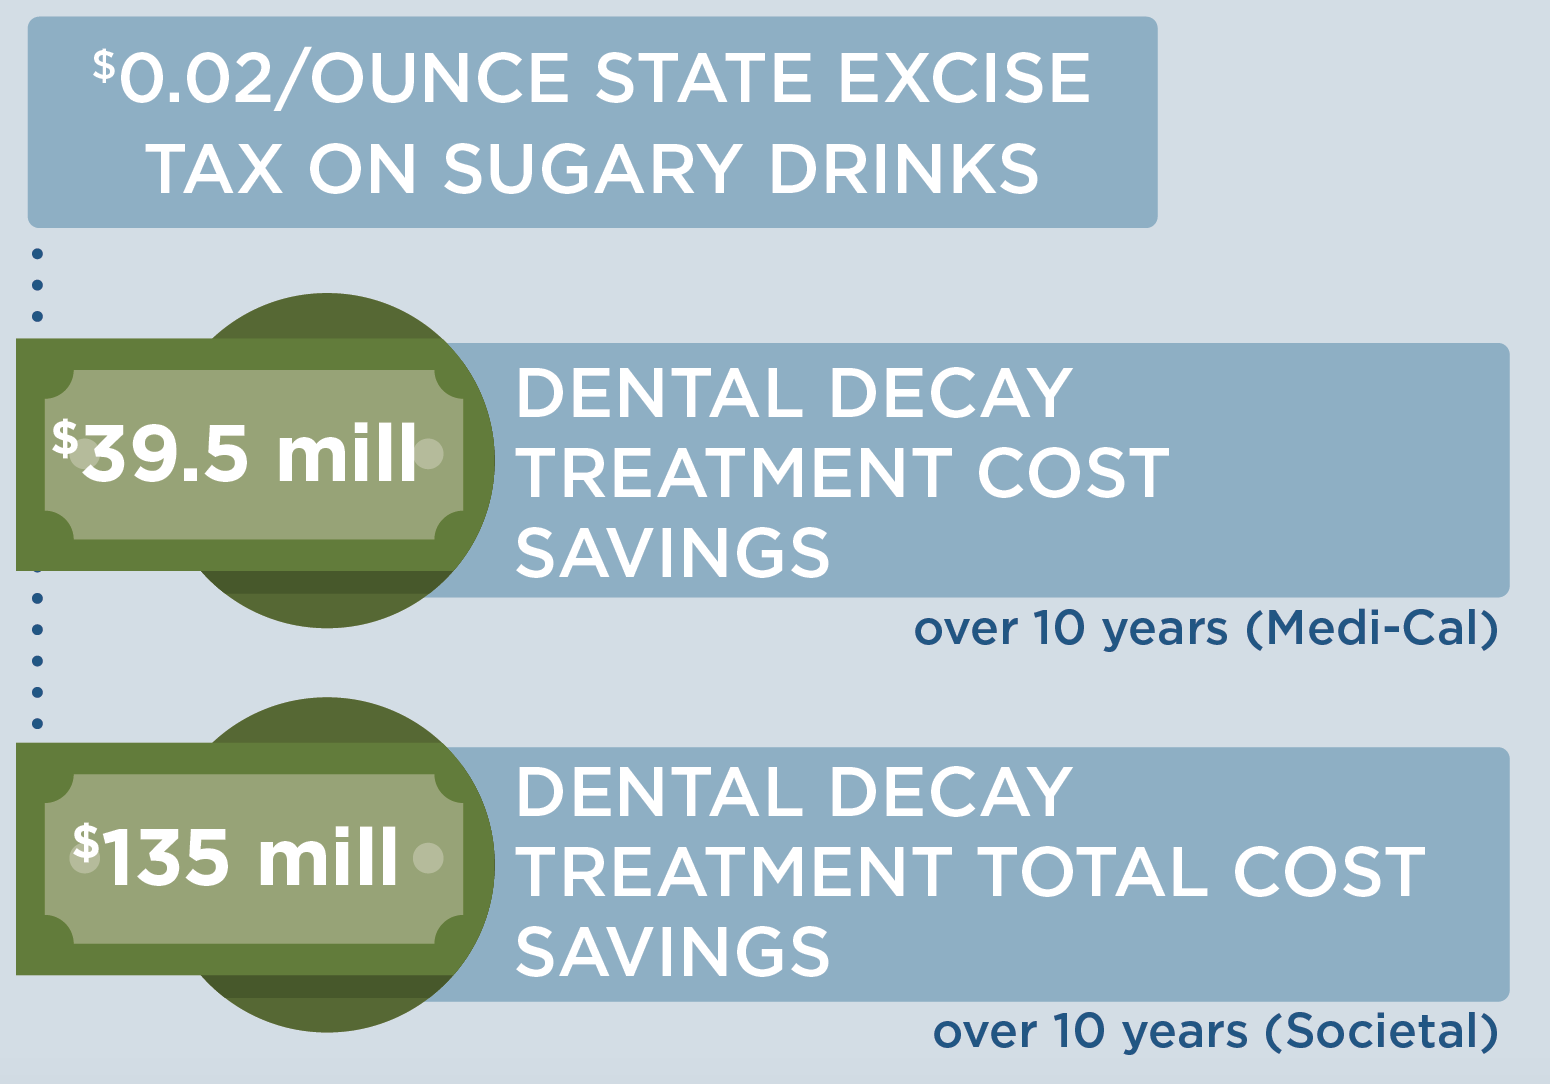 $0.02 per ounce state excise tax on sugary drinks would lead to $39.5 million in dental decay treatment cost savings over 10 years (Medi-Cal) and $135 million in dental decay treatment total cost savings over 10 years (Societal)